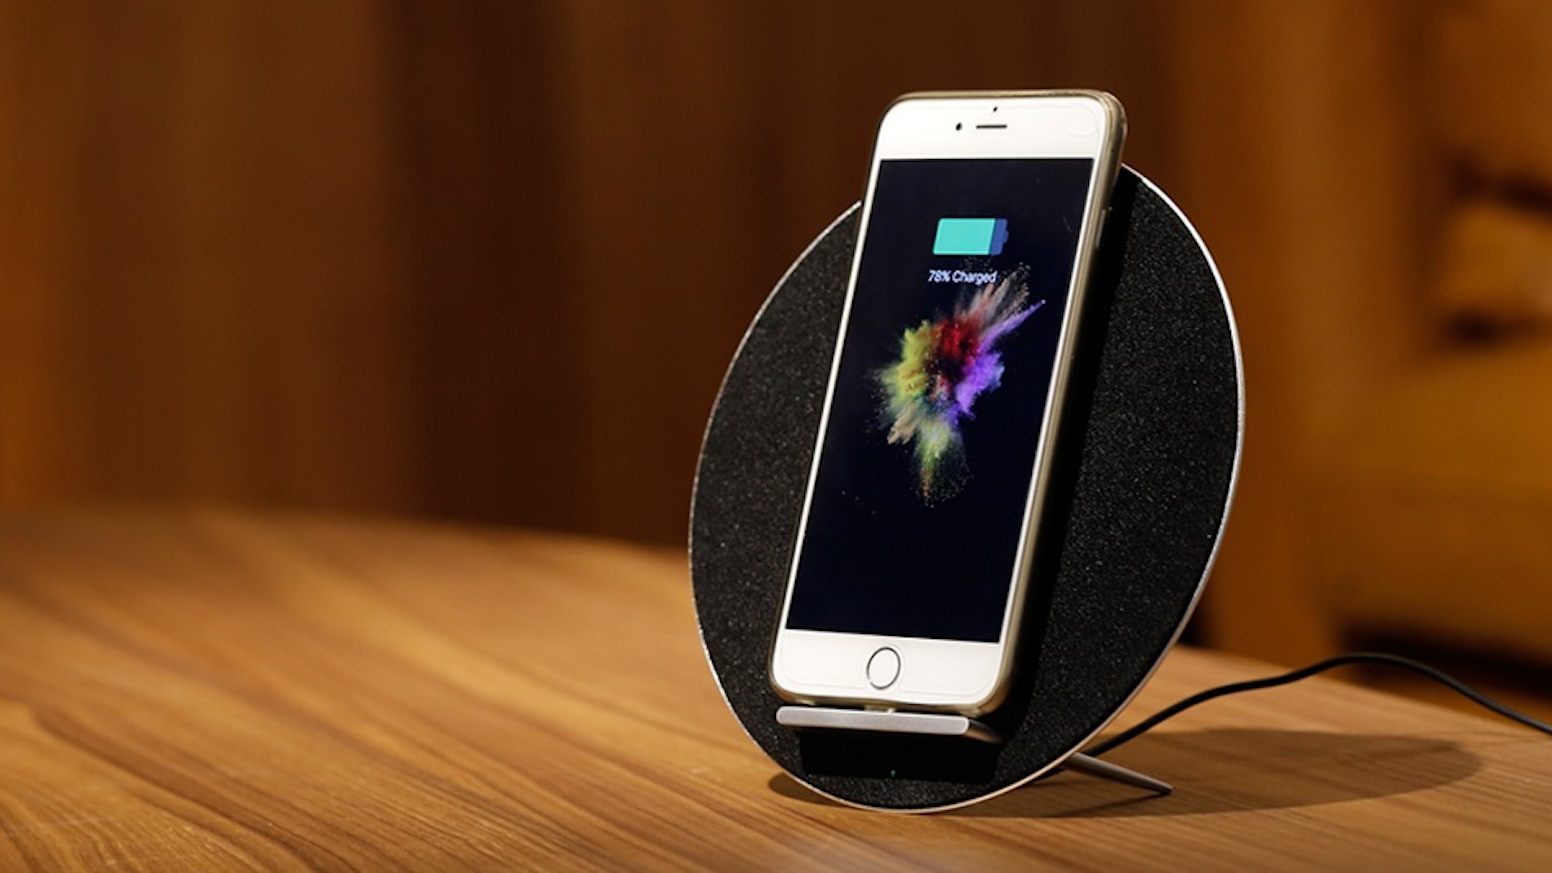 A monumental achievement to combine wireless charger, built-in Bluetooth speaker and phone stand into one unit.